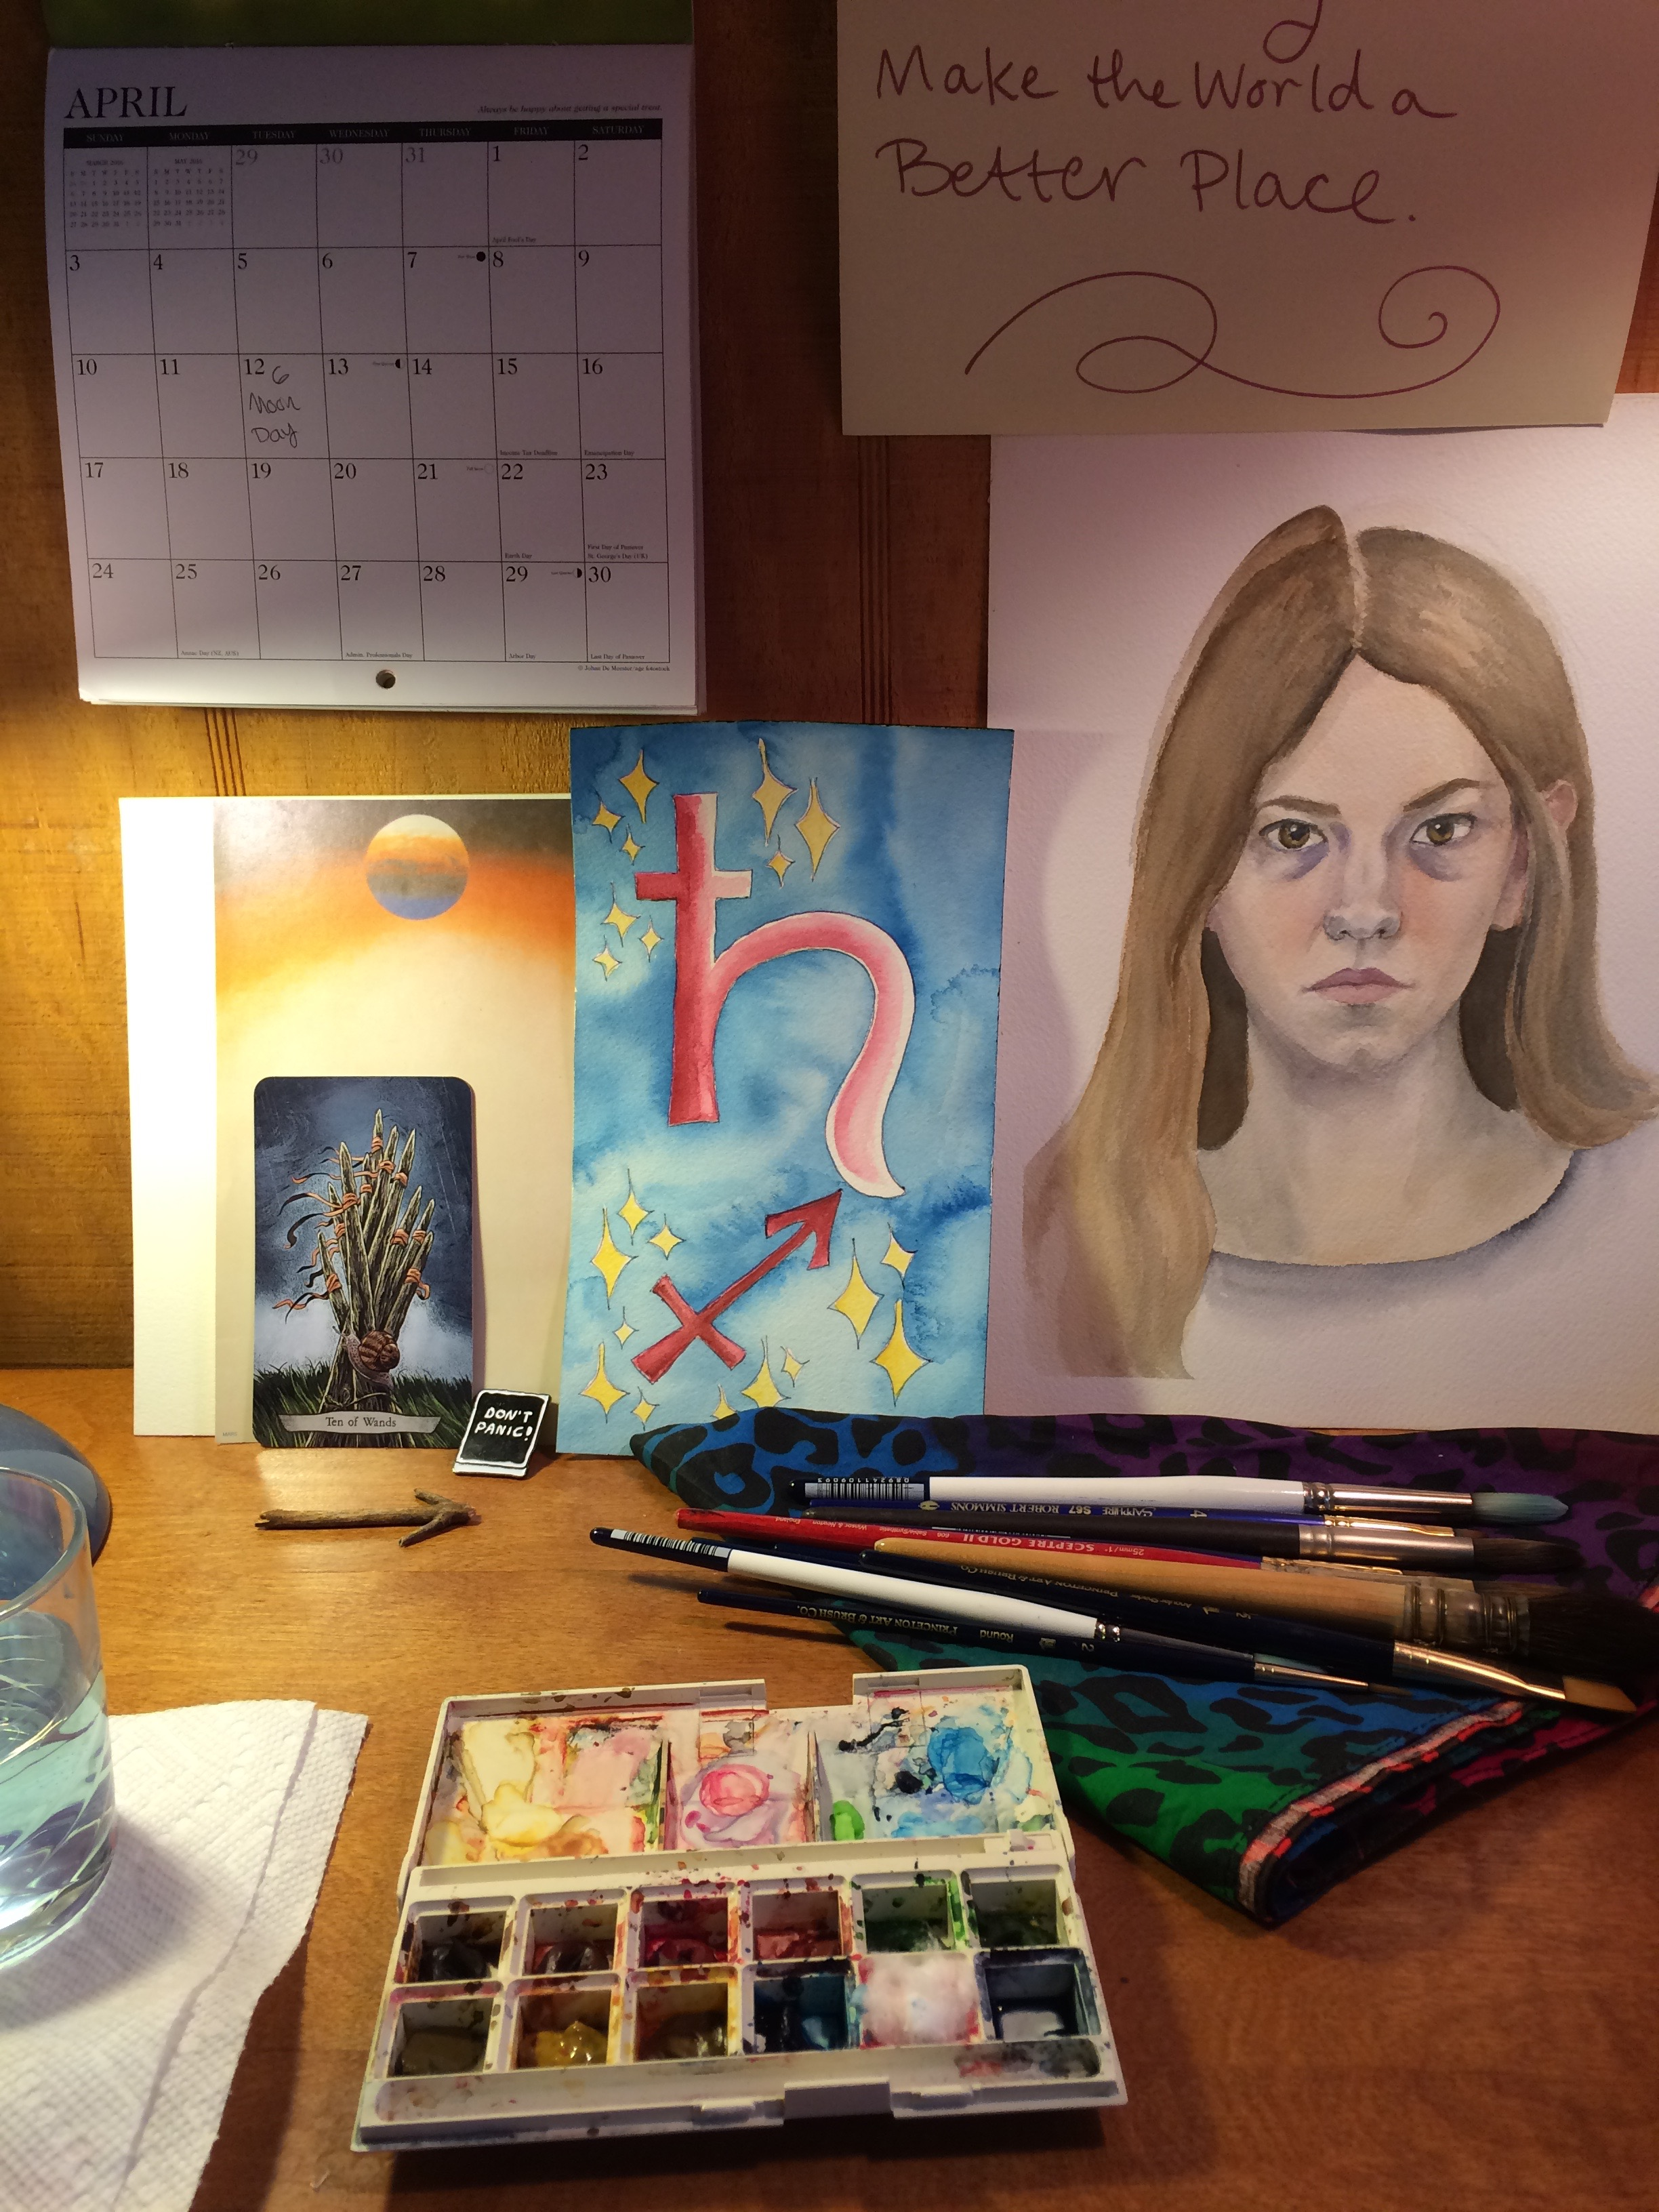 a watercolor palette open on a desk, a group of brushes laying on a rainbow leopard print kerchief beside it. on the wall behind the desk is propped an old unfinished watercolor self-portrait, a watercolor image of the Saturn and Sagittarius sigils on a blue background, a calendar open to April, and the Ten of Wands tarot card leaning against a blank piece of stationary topped with a planet. a glass of painting water is visible on the left.